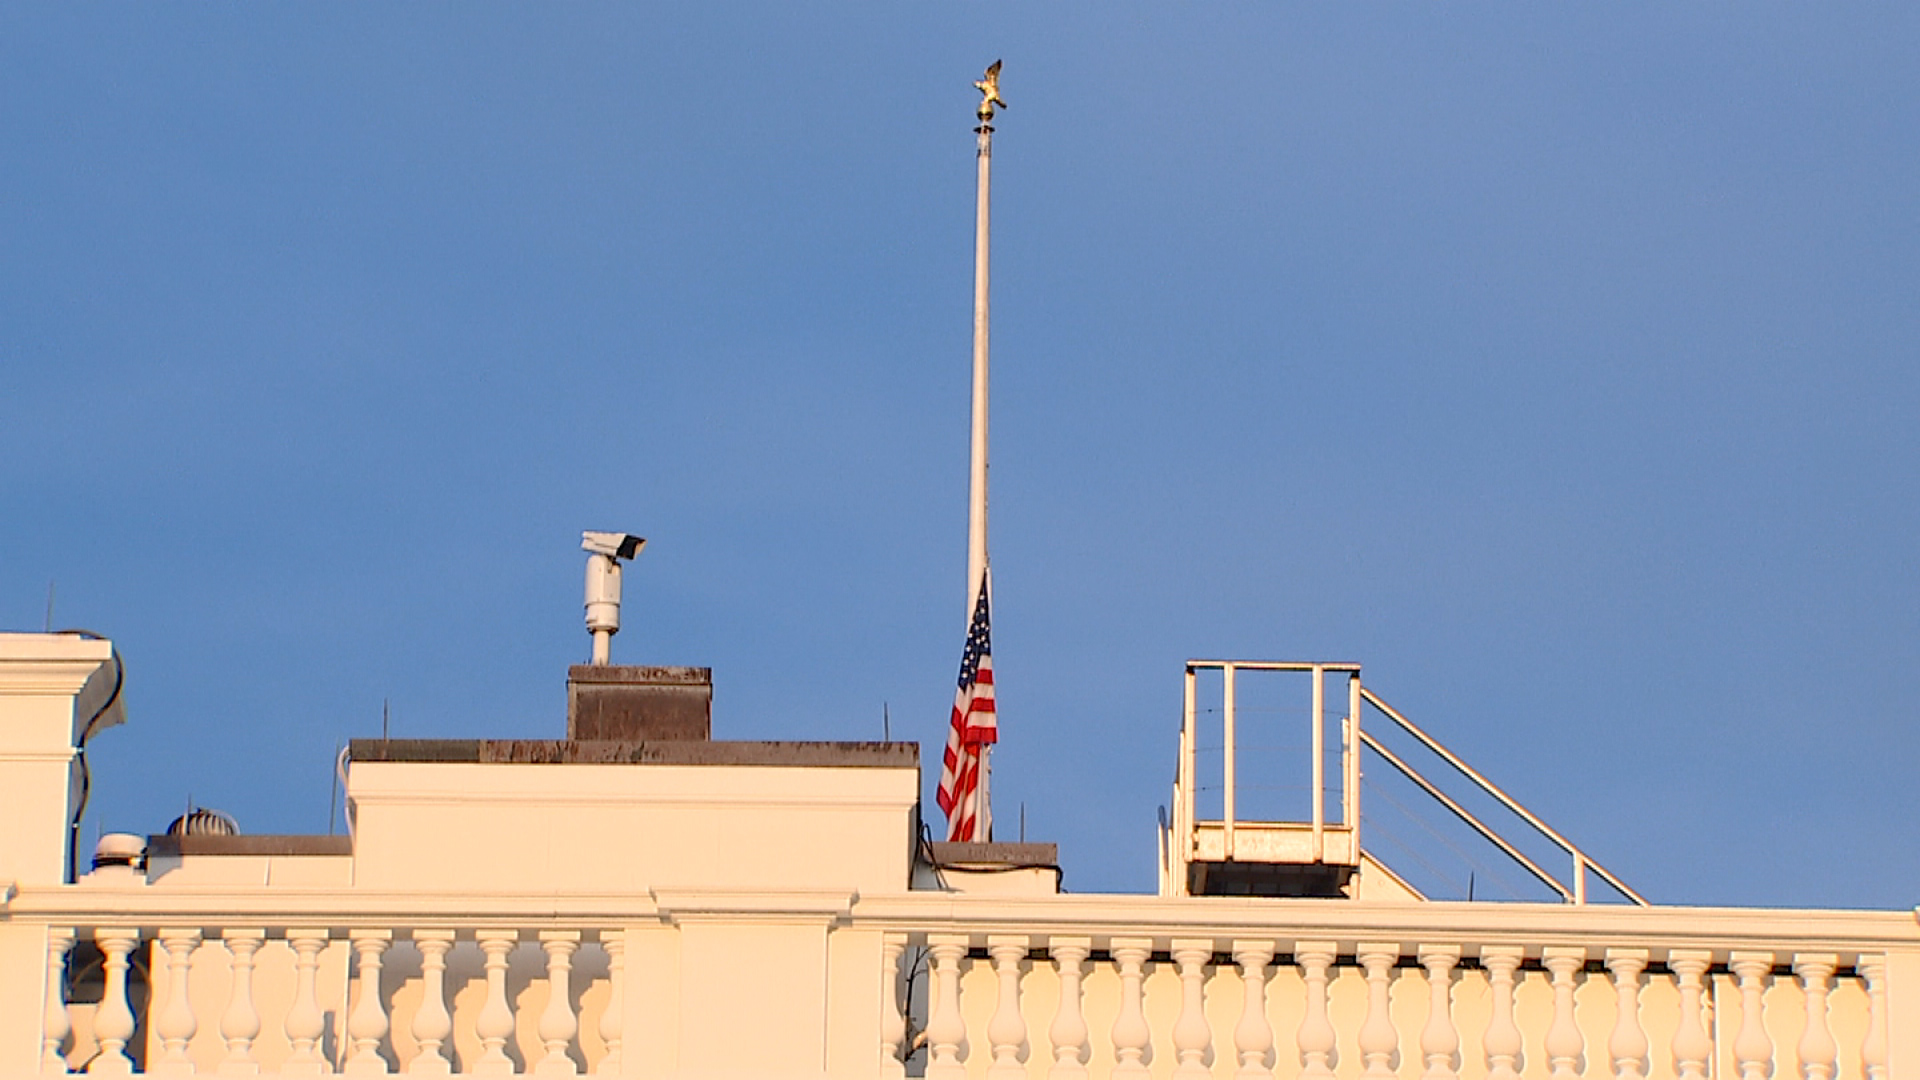 The US flag is lowered at the White House in Washington, DC, on August 26.